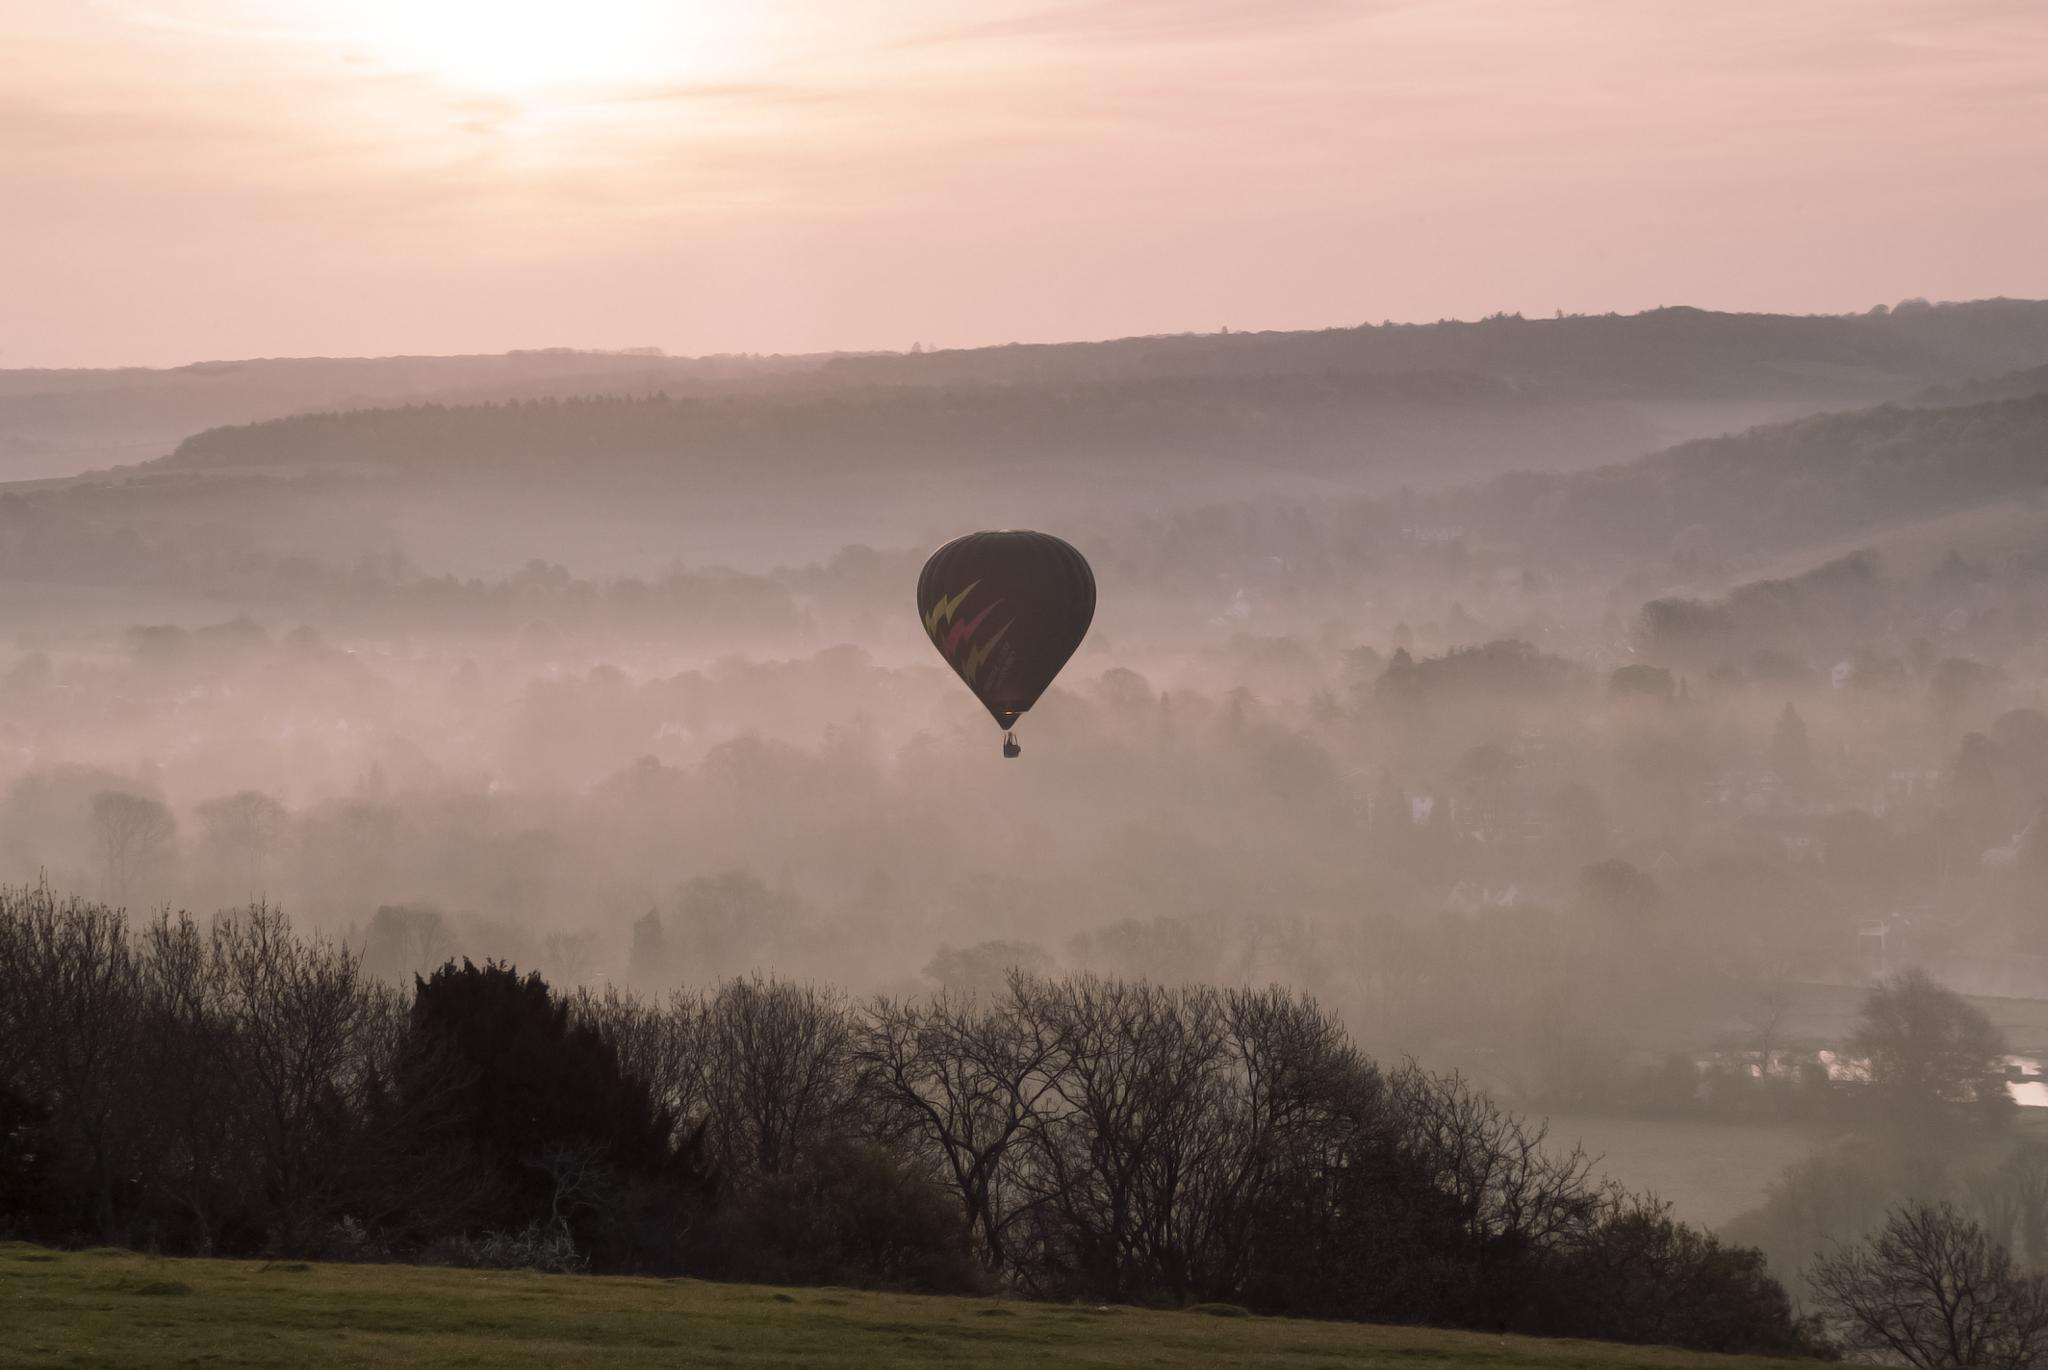 Dawn in the Thames Valley at Goring by Jim Hellier